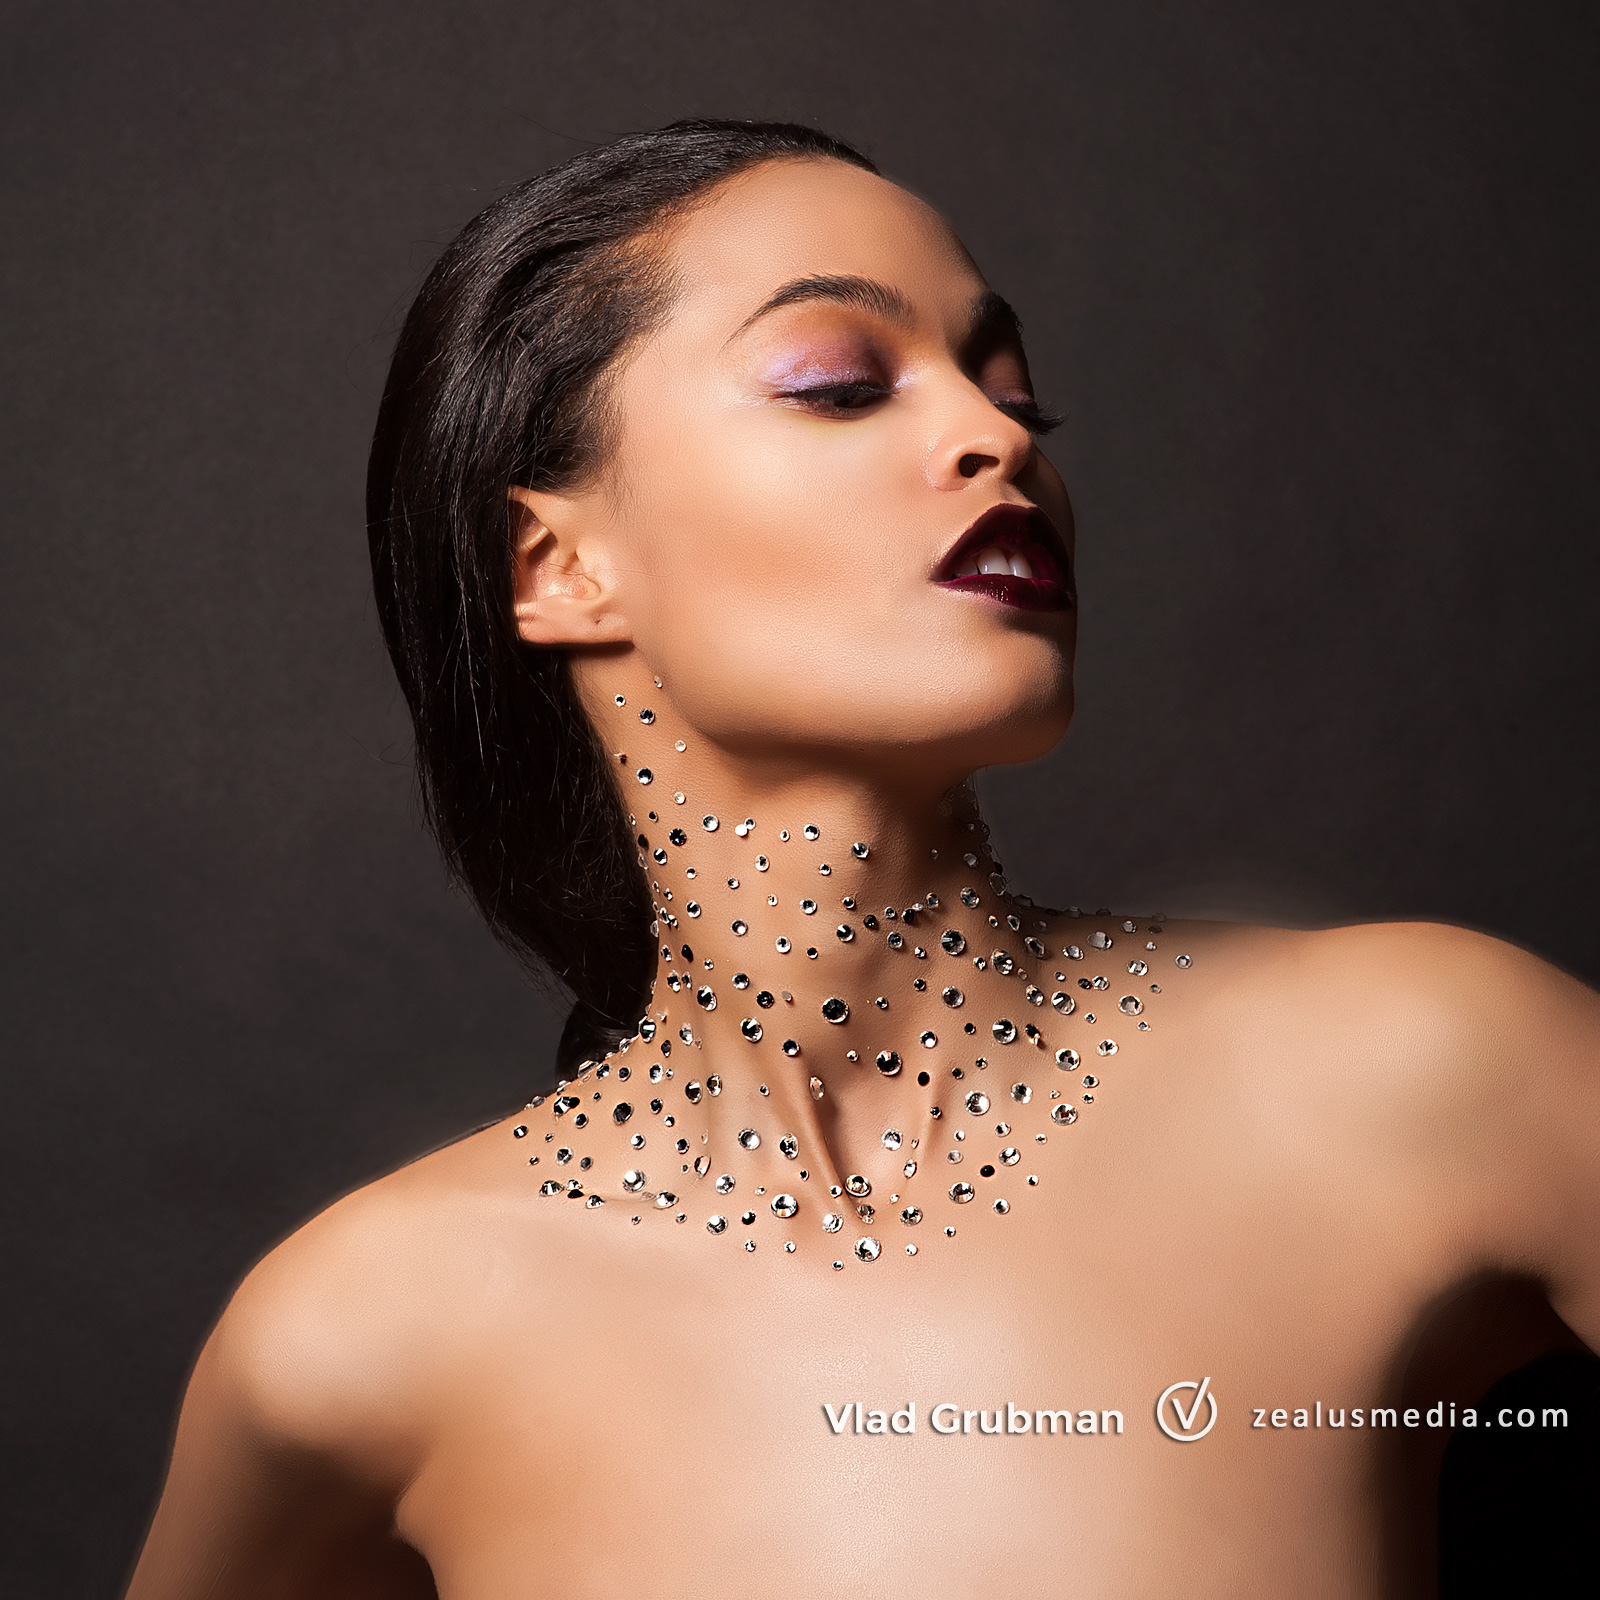 Creative portrait with crystals - photographer Vlad Grubman / Zealusmedia.com